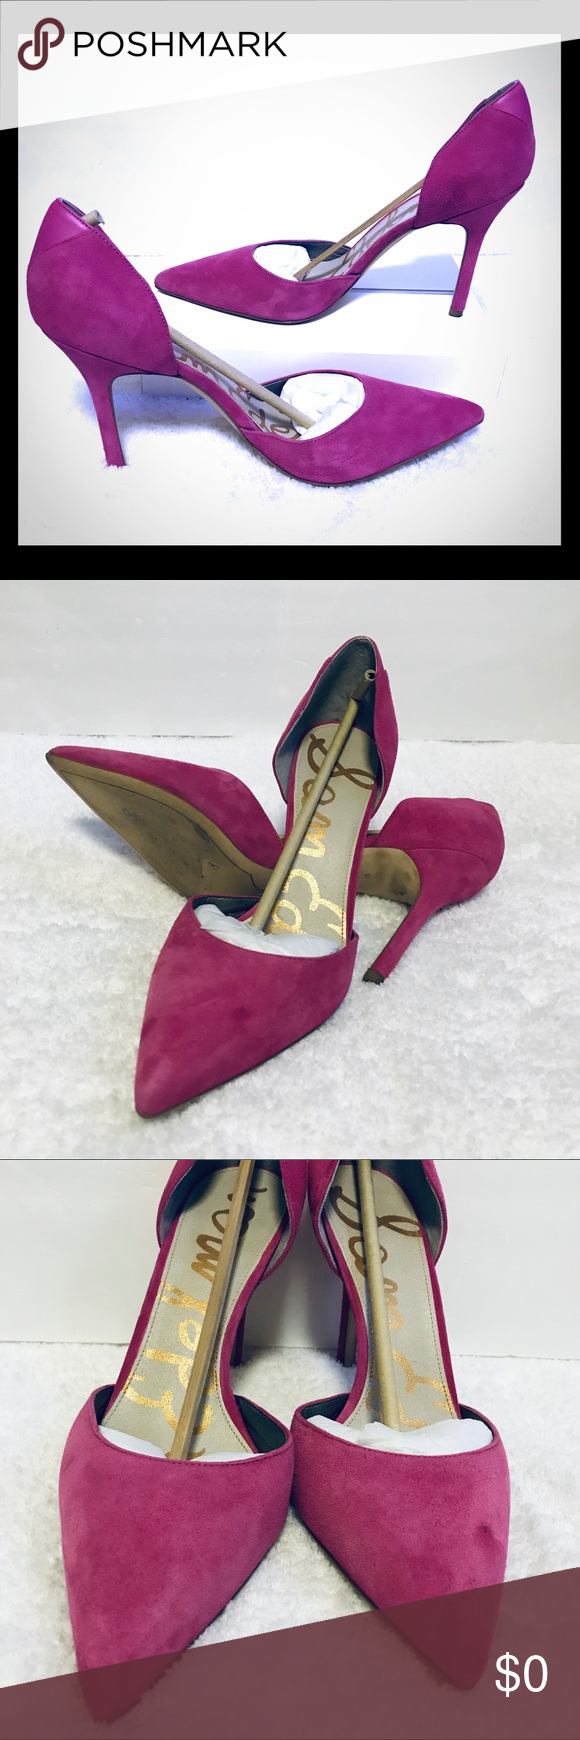 c43754a4971 Sam Edelman Delilah Pink Pointed Suede Heels 10 Very good pre-owned  condition Sam Edelman